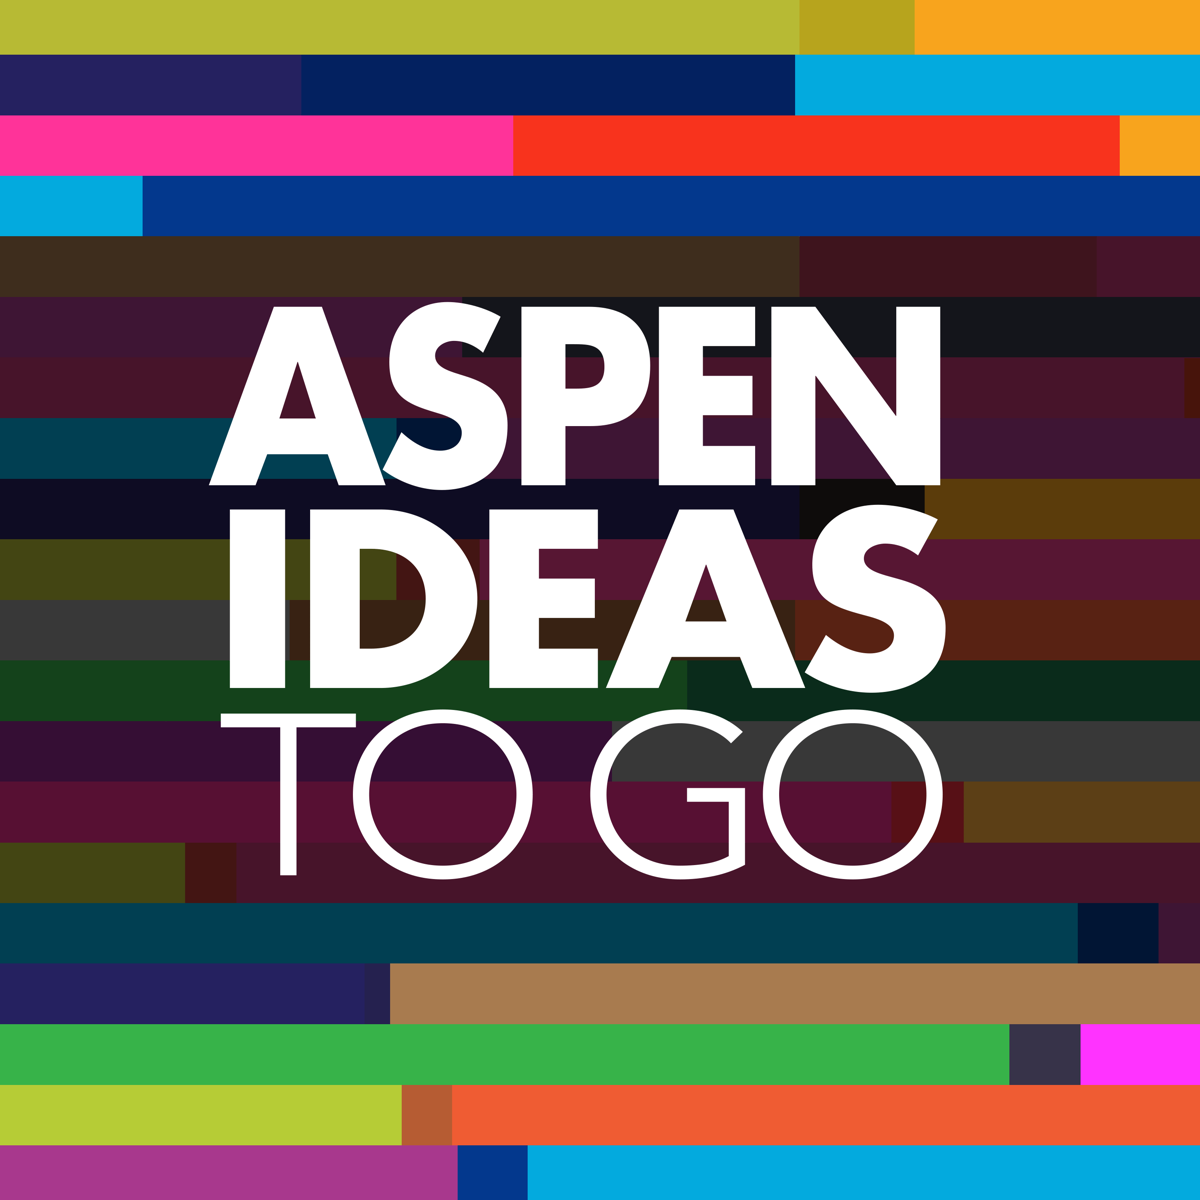 Aspen Ideas To Go